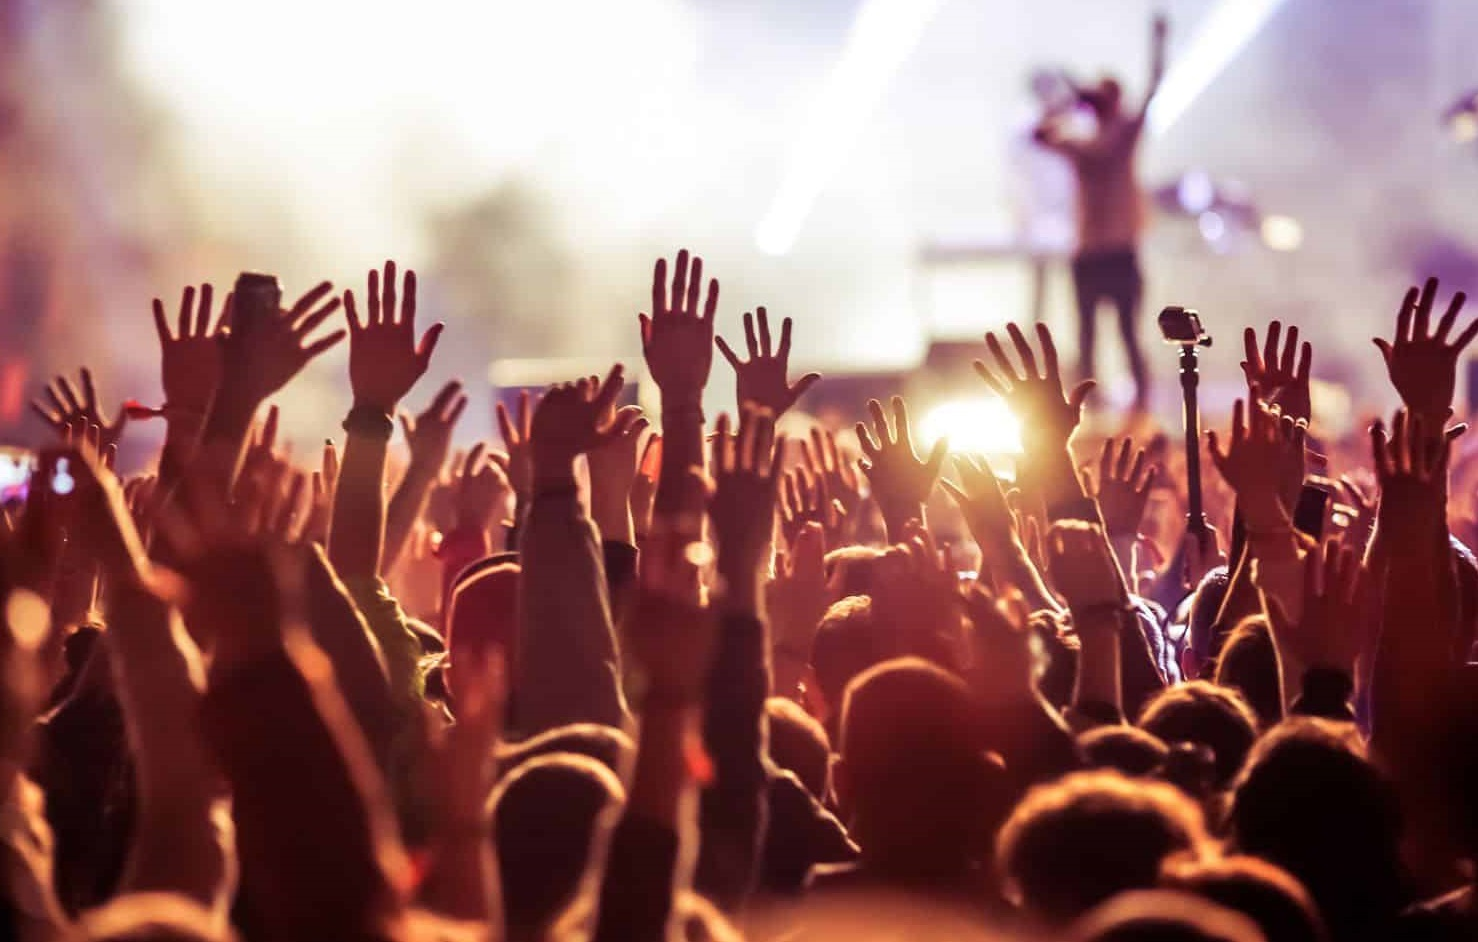 What Age of Young People Are Allowed In Concerts Without Parents?2